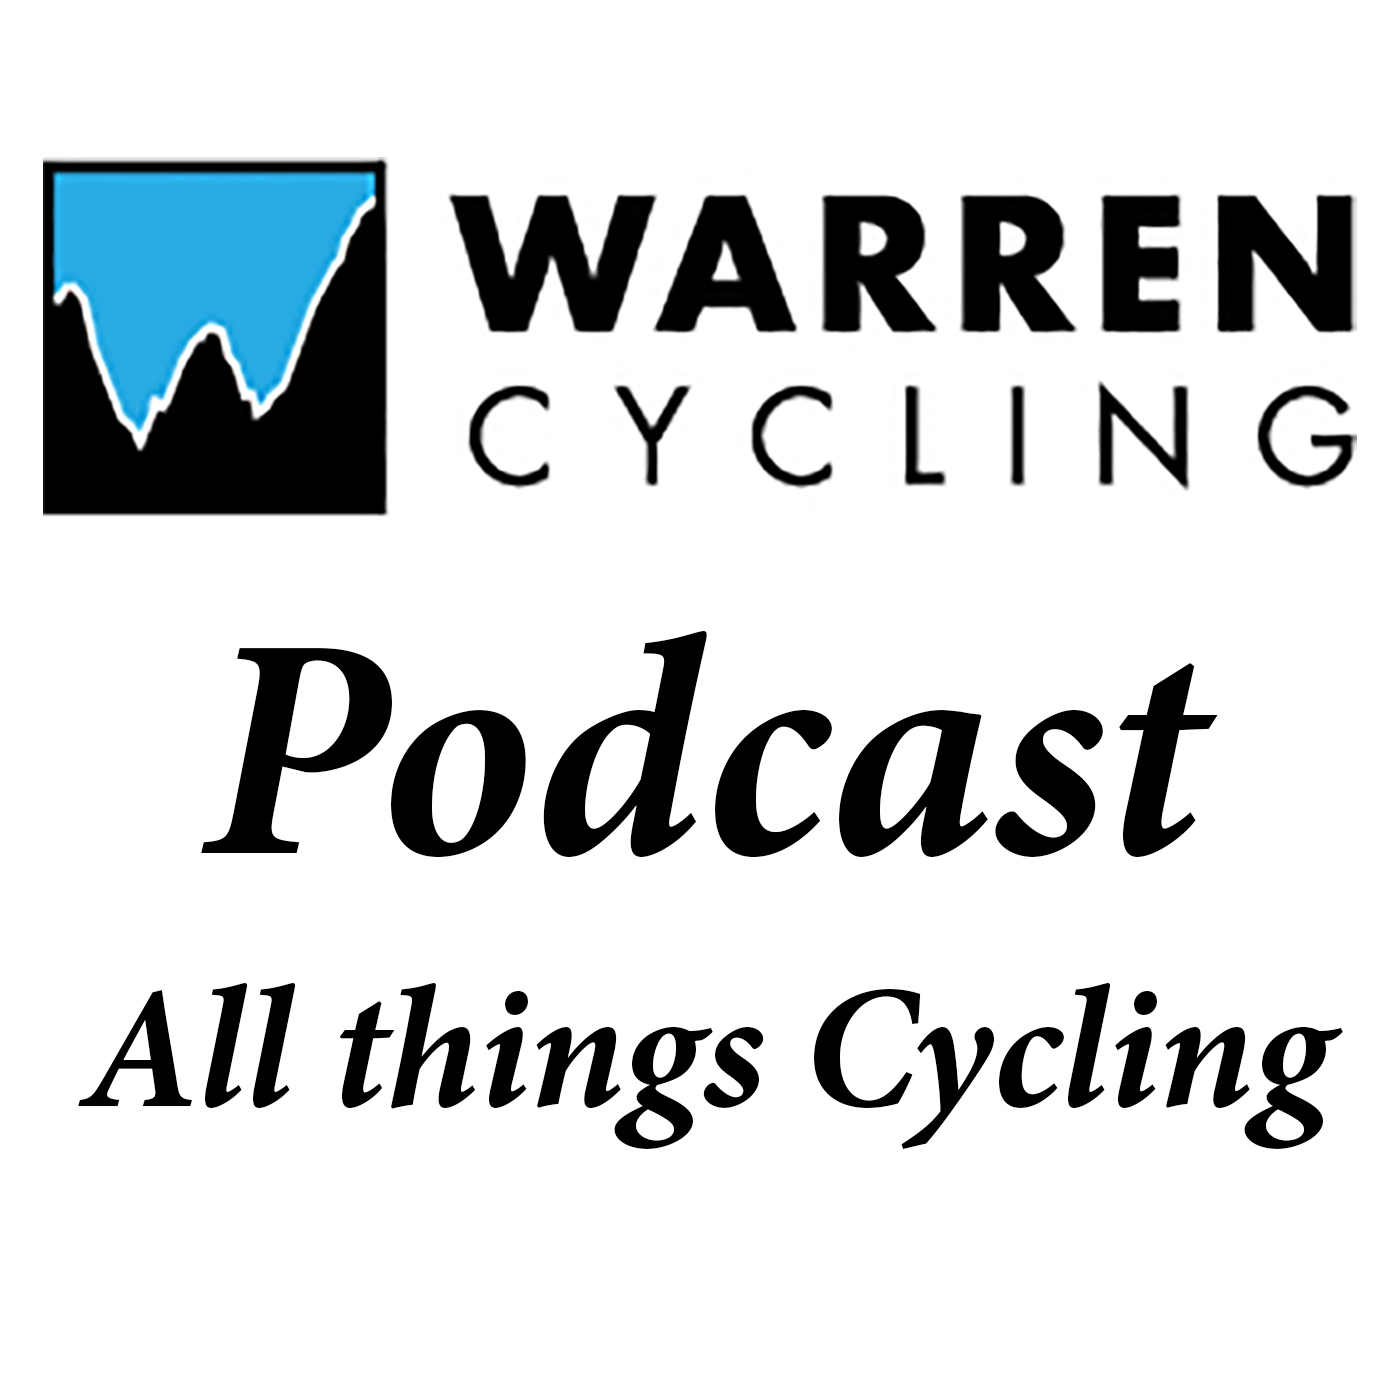 Warren Cycling Podcast Episode 245: Flanders Buildup show art